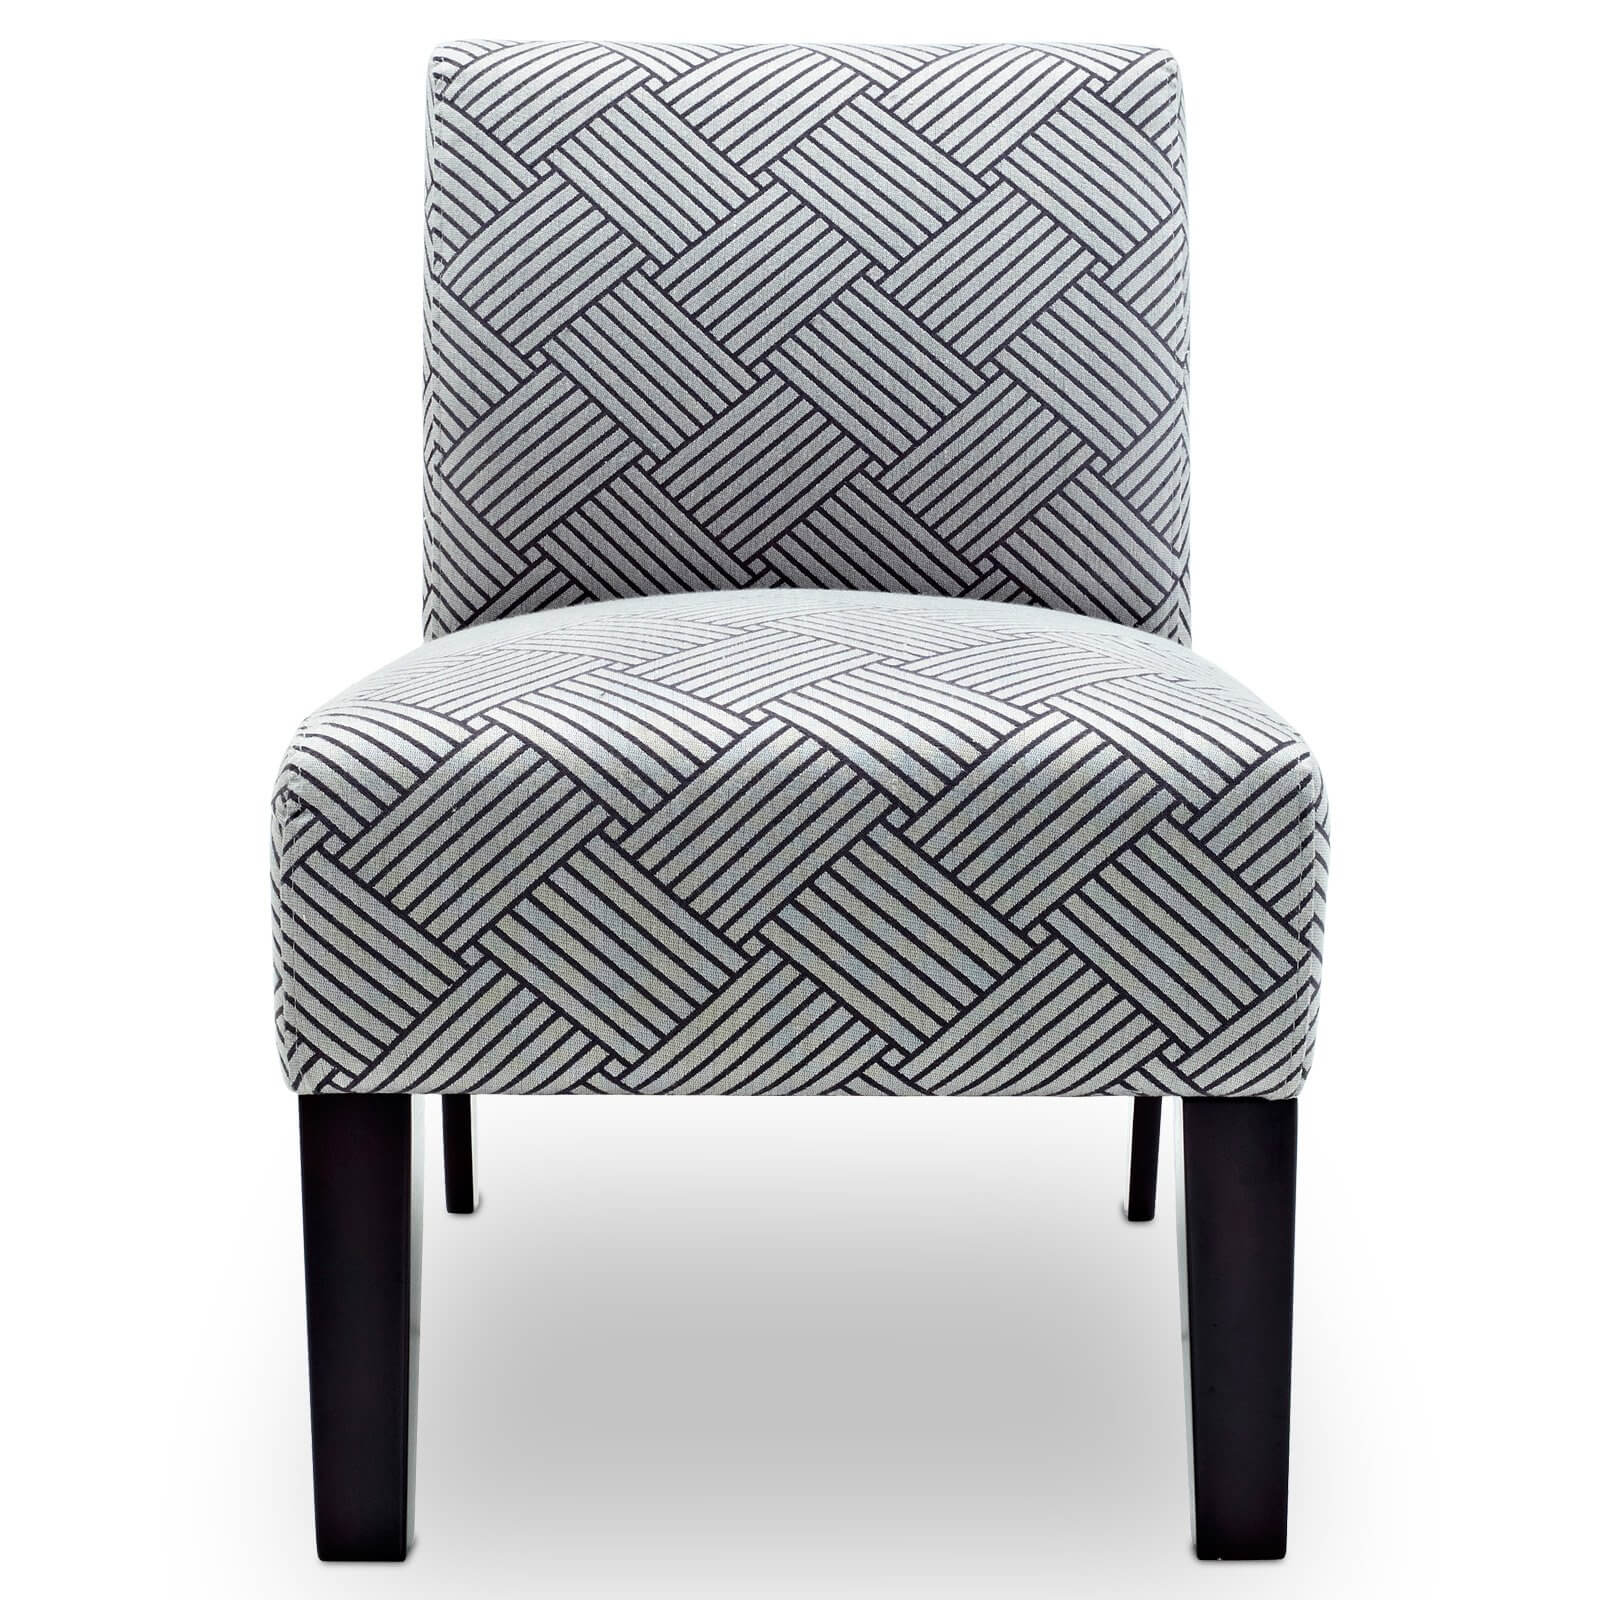 Superb I Love The Pattern Of This Accent Chair (because I Like Geometric Patterns).